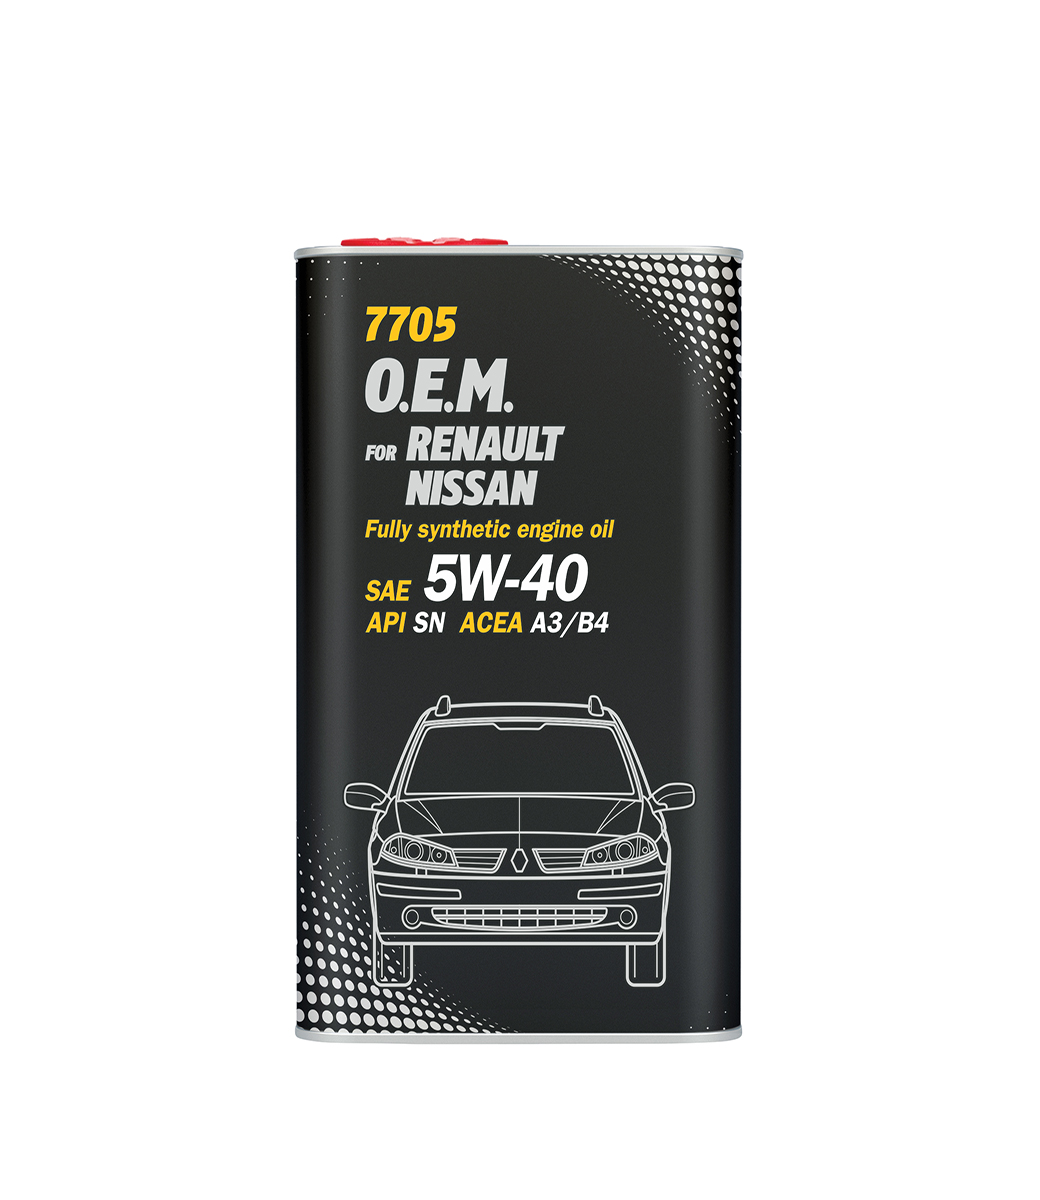 O.E.M. for Renault Nissan 5W-40